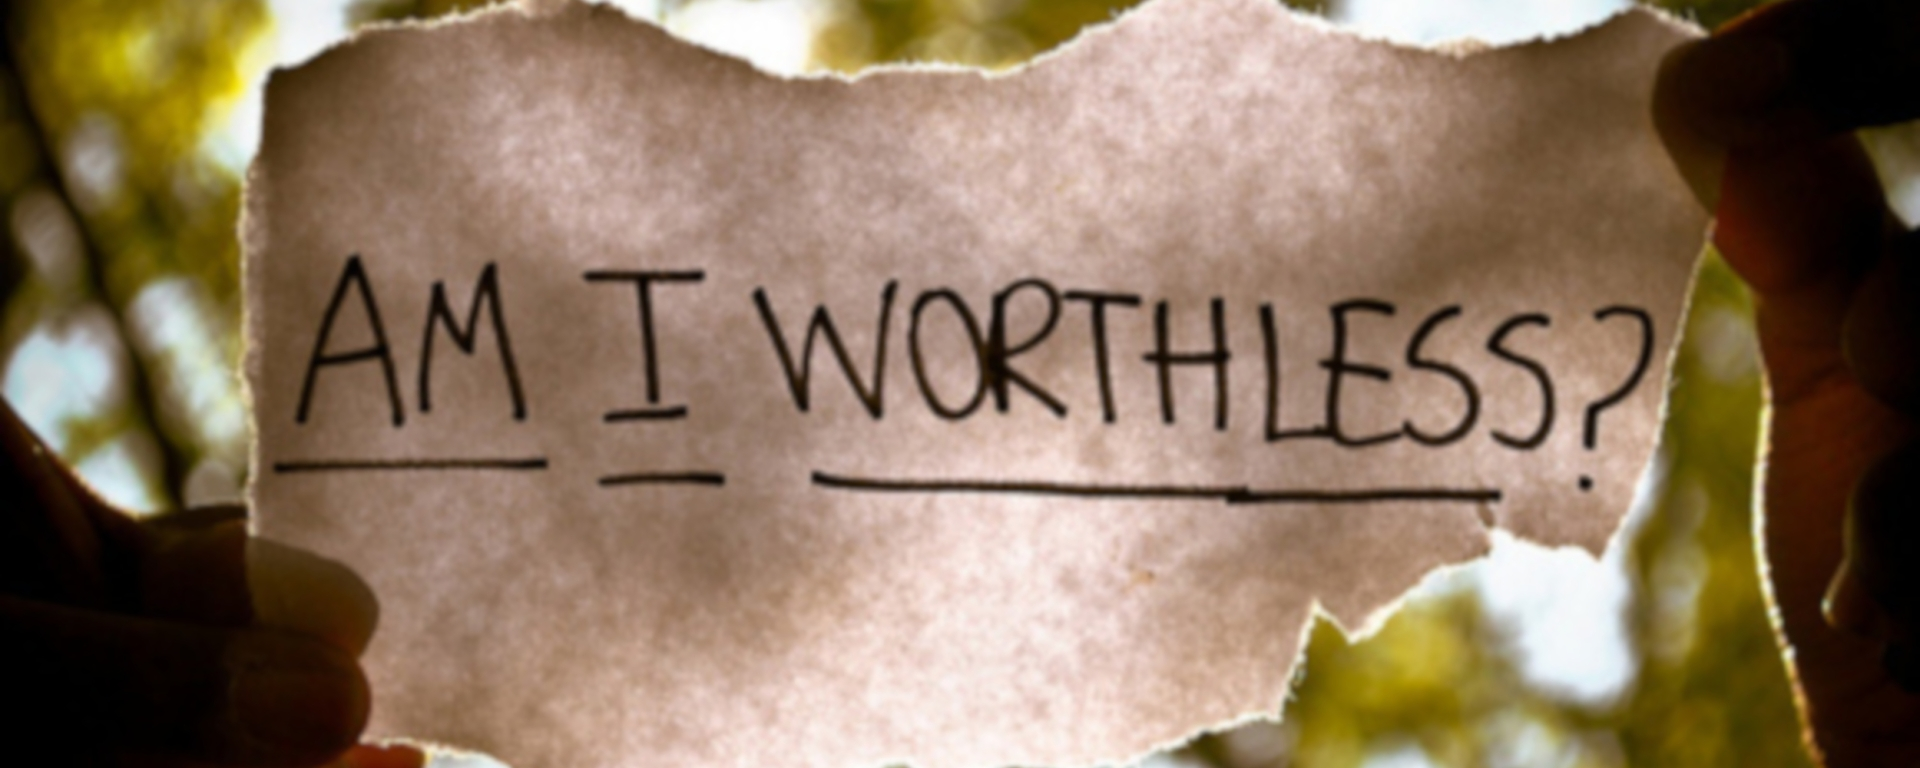 Am I worthless?